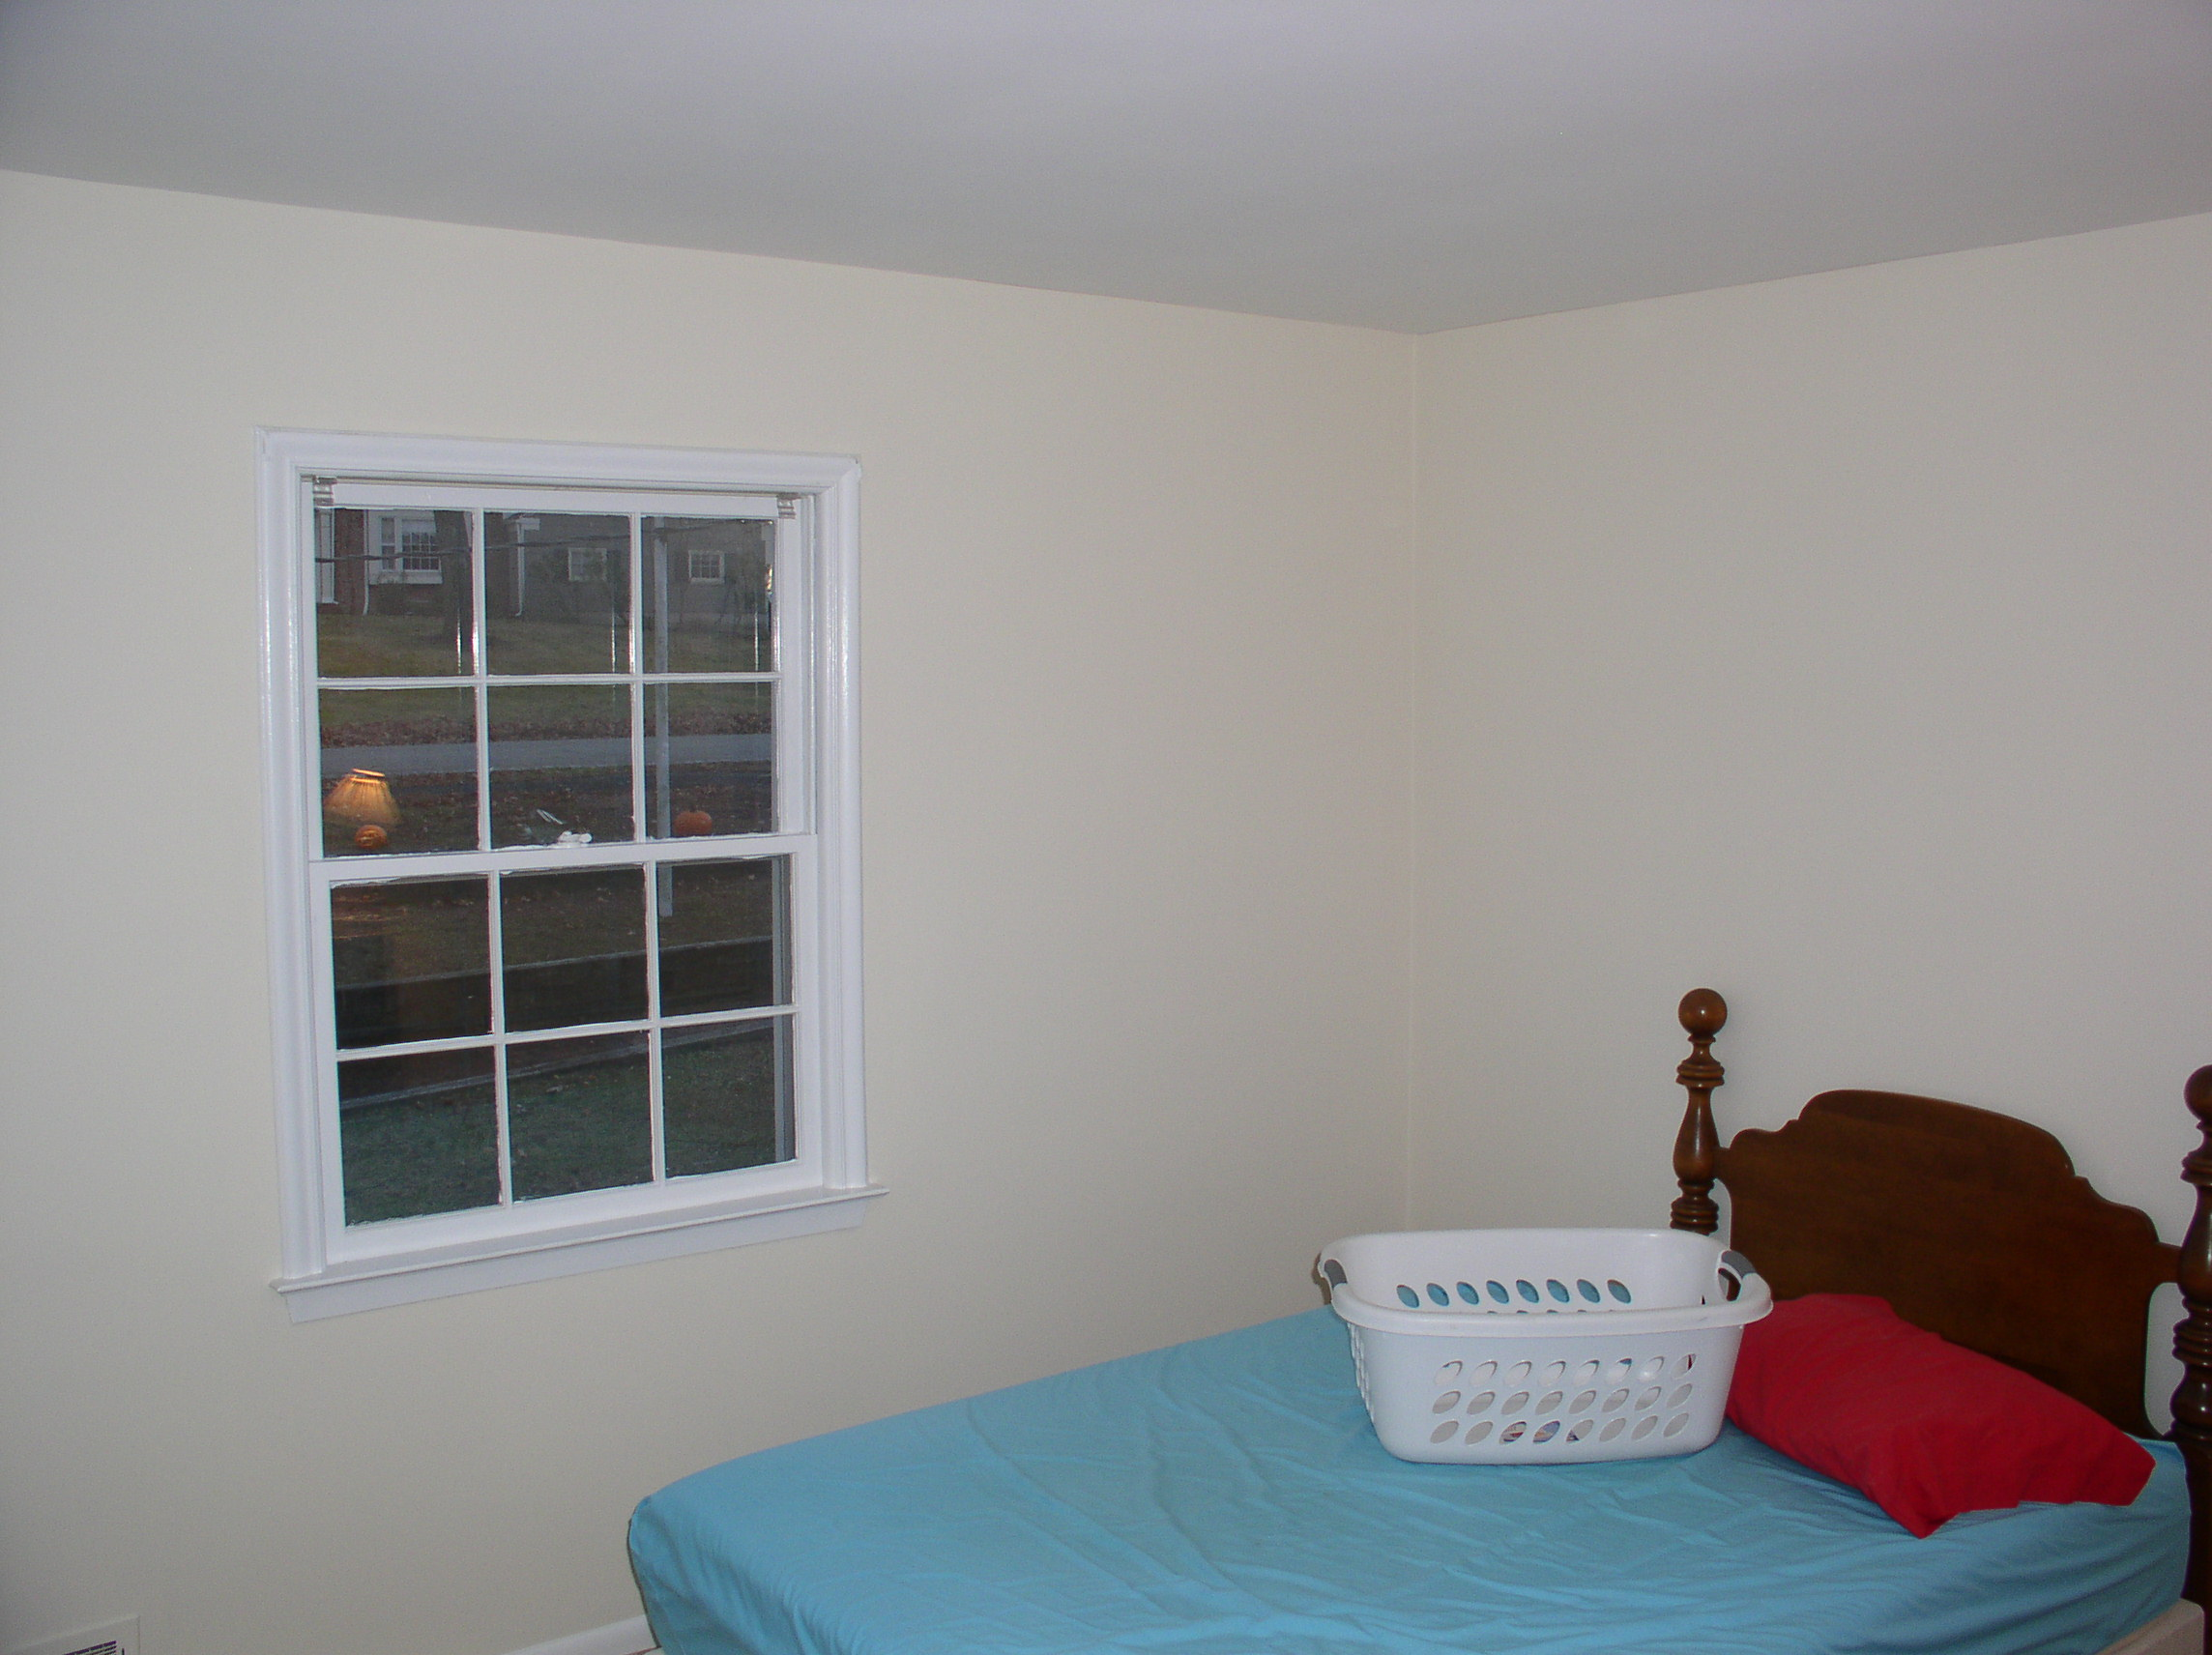 Painted Bedroom after Wallpaper Removal Morristown NJ Painting 2288x1712